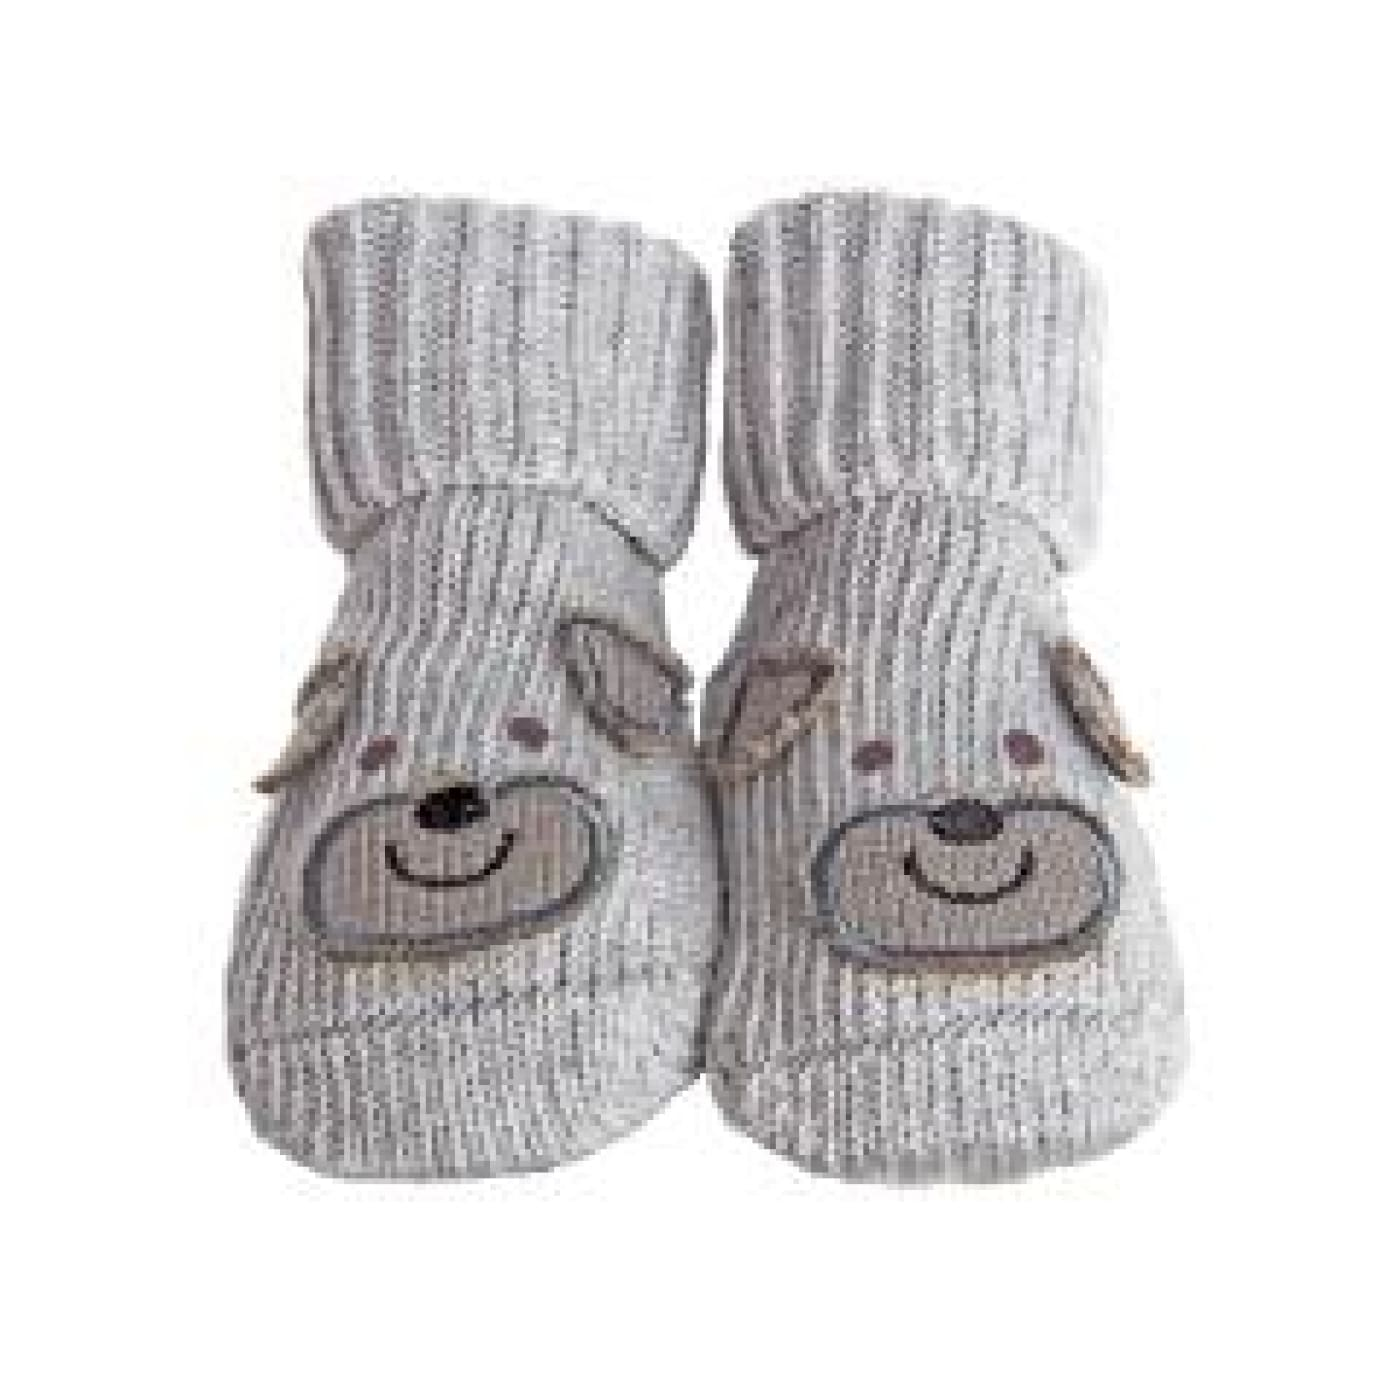 Playette Novelty Bootie Socks - Boys Grey Puppy 0-6M - BABY & TODDLER CLOTHING - MITTENS/SOCKS/SHOES